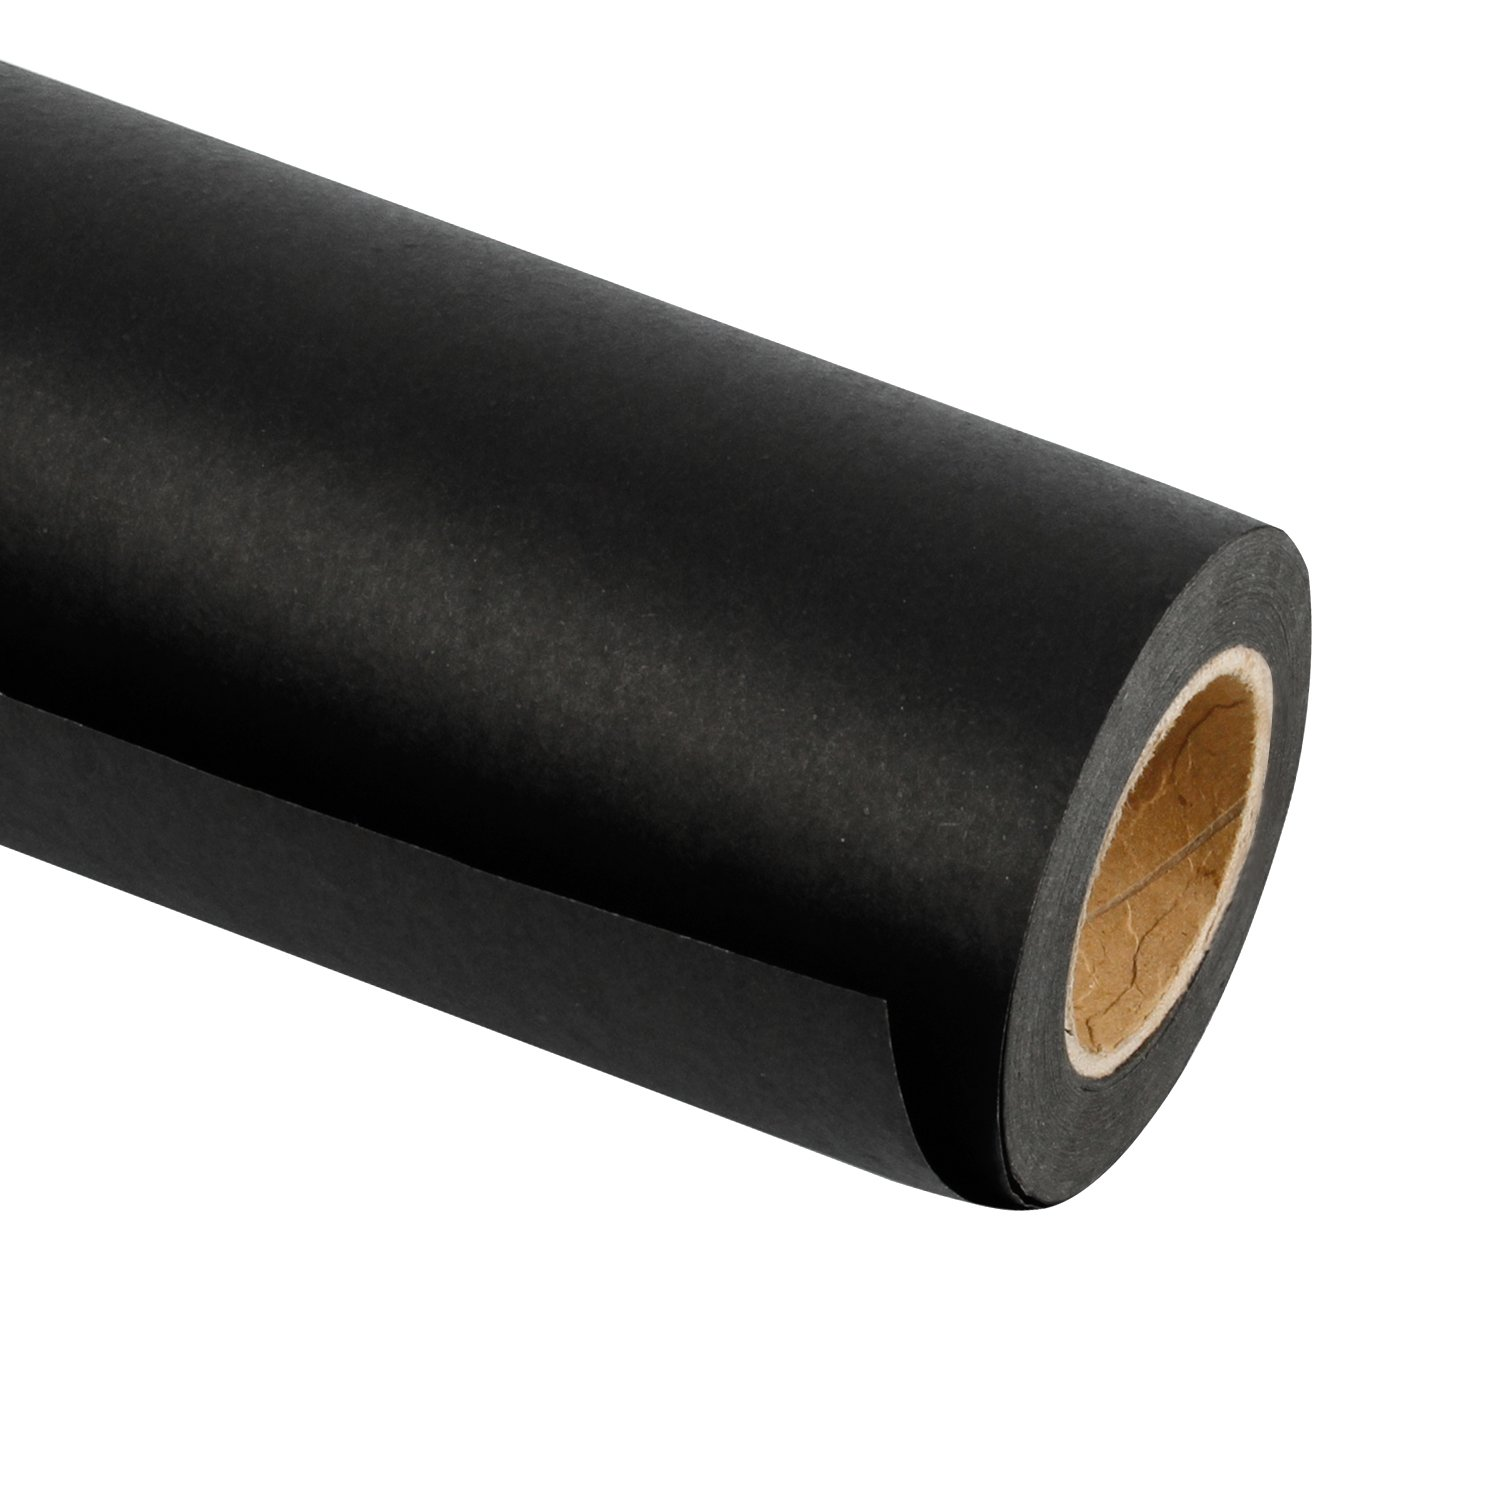 RUSPEPA Black Kraft Paper Roll - 18 inch x 100 Feet - Recycled Paper Perfect for for Crafts, Art, Gift Wrapping, Packing, Postal, Shipping, Dunnage & Parcel by RUSPEPA